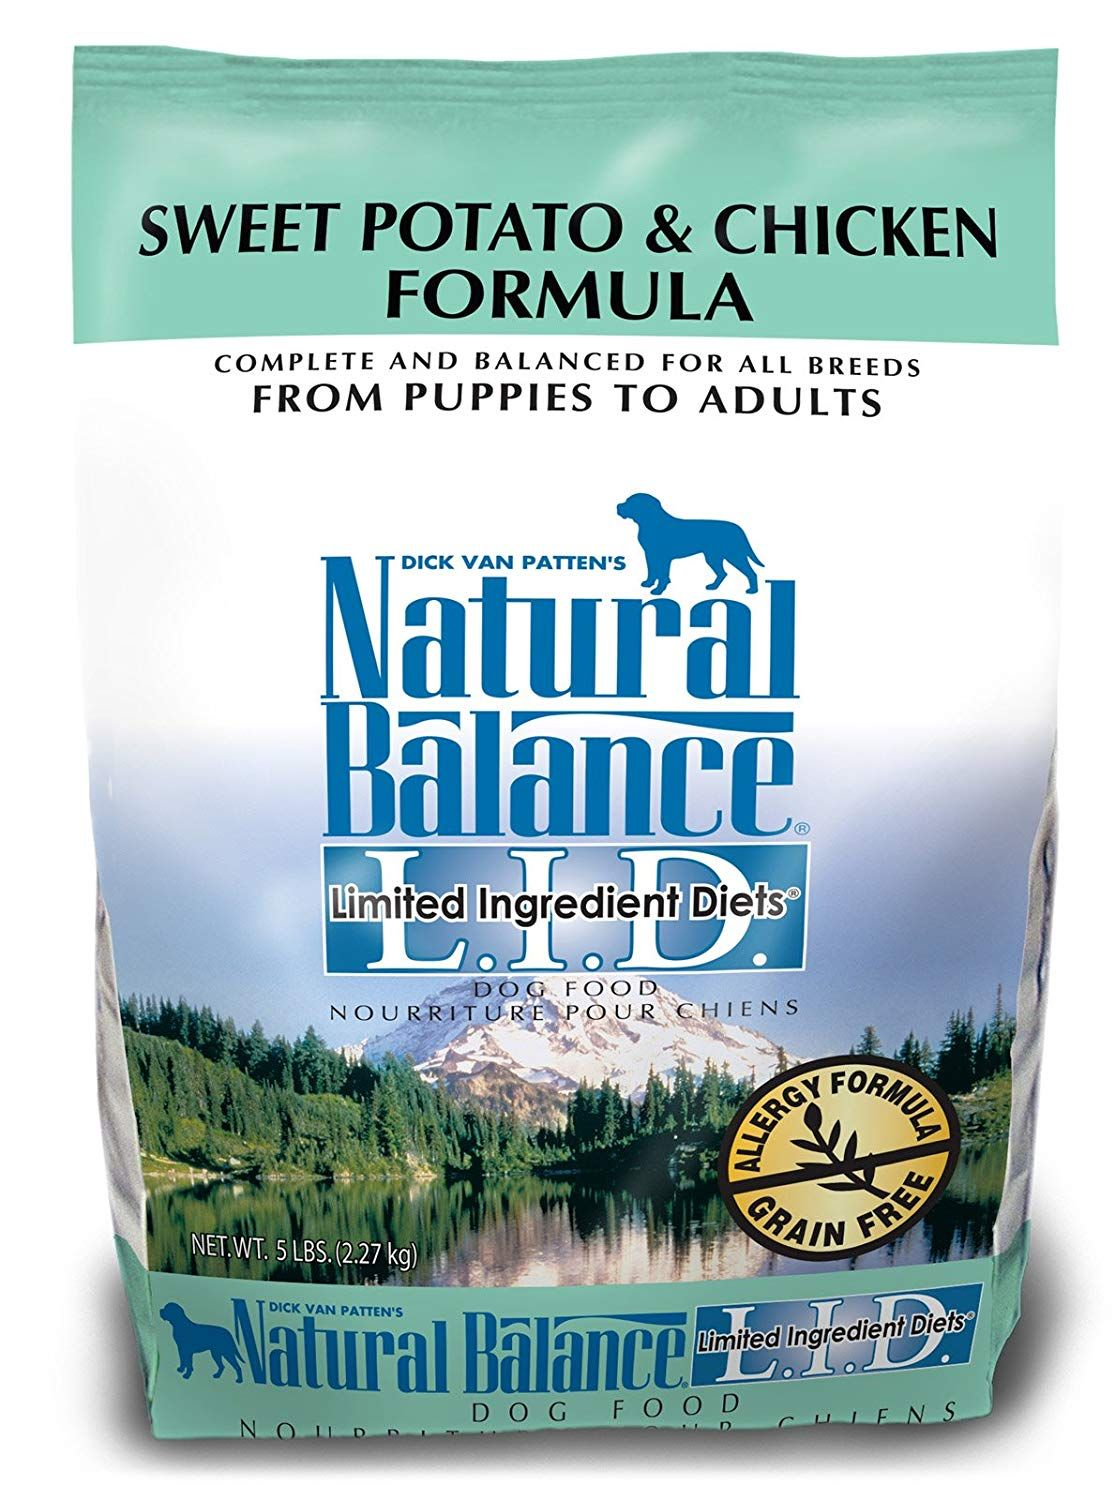 Limited Ingredient Diets Sweet Potato And Chicken Formula Dry Dog